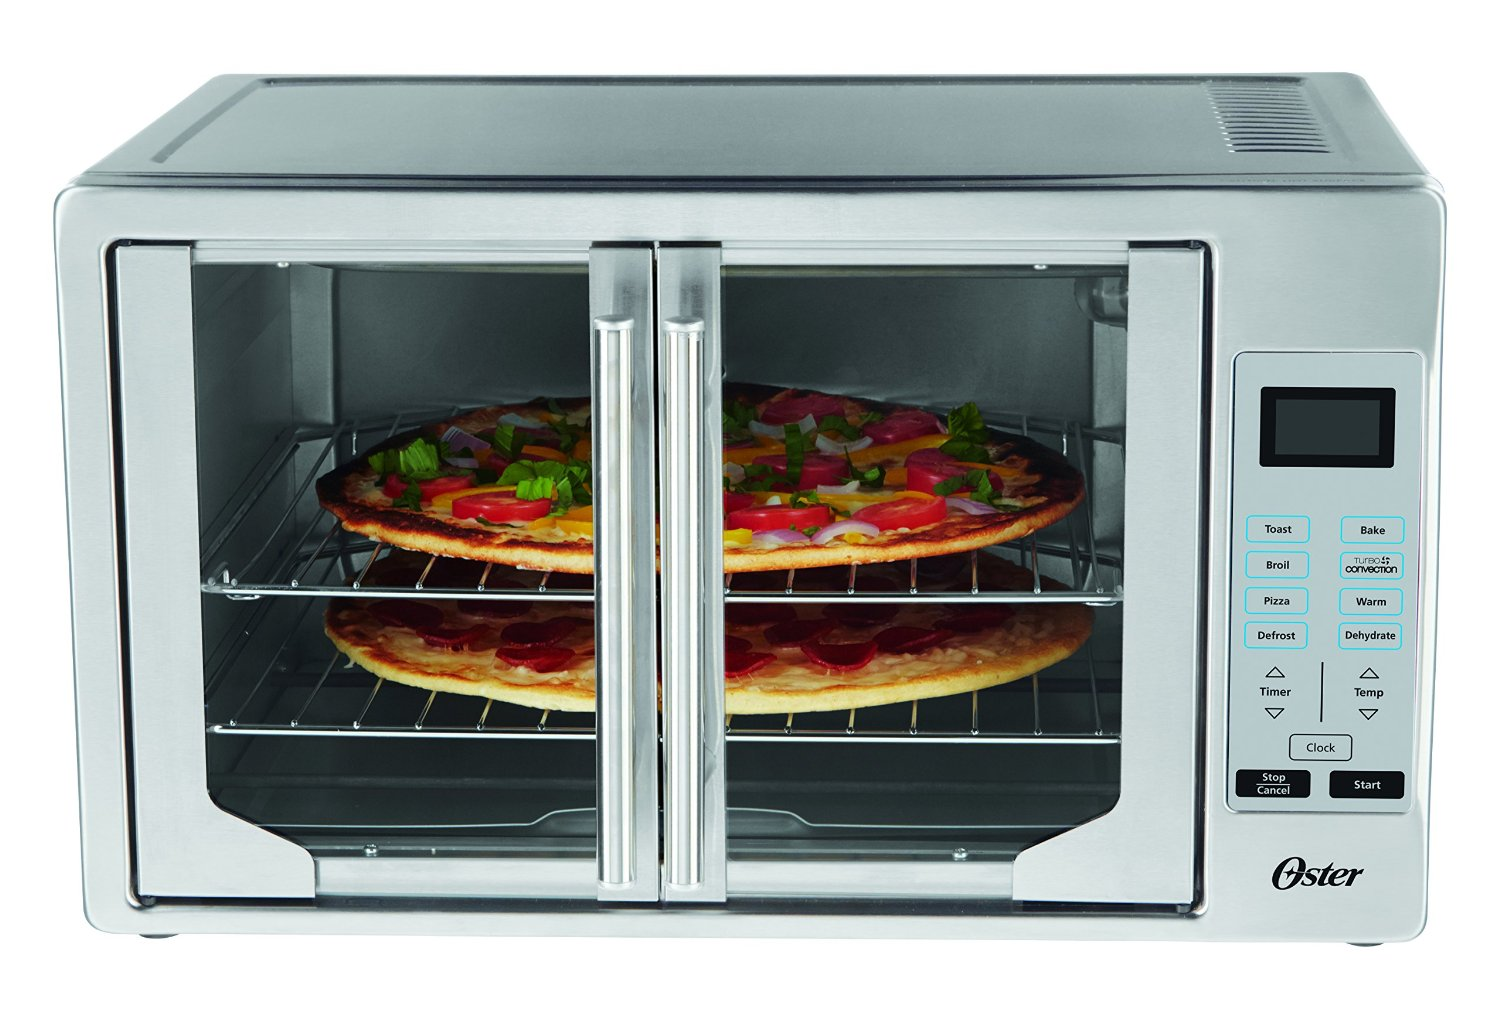 Oster Convection Countertop Oven Reviews Oster Tssttvfdxl French Door Oven With Convection